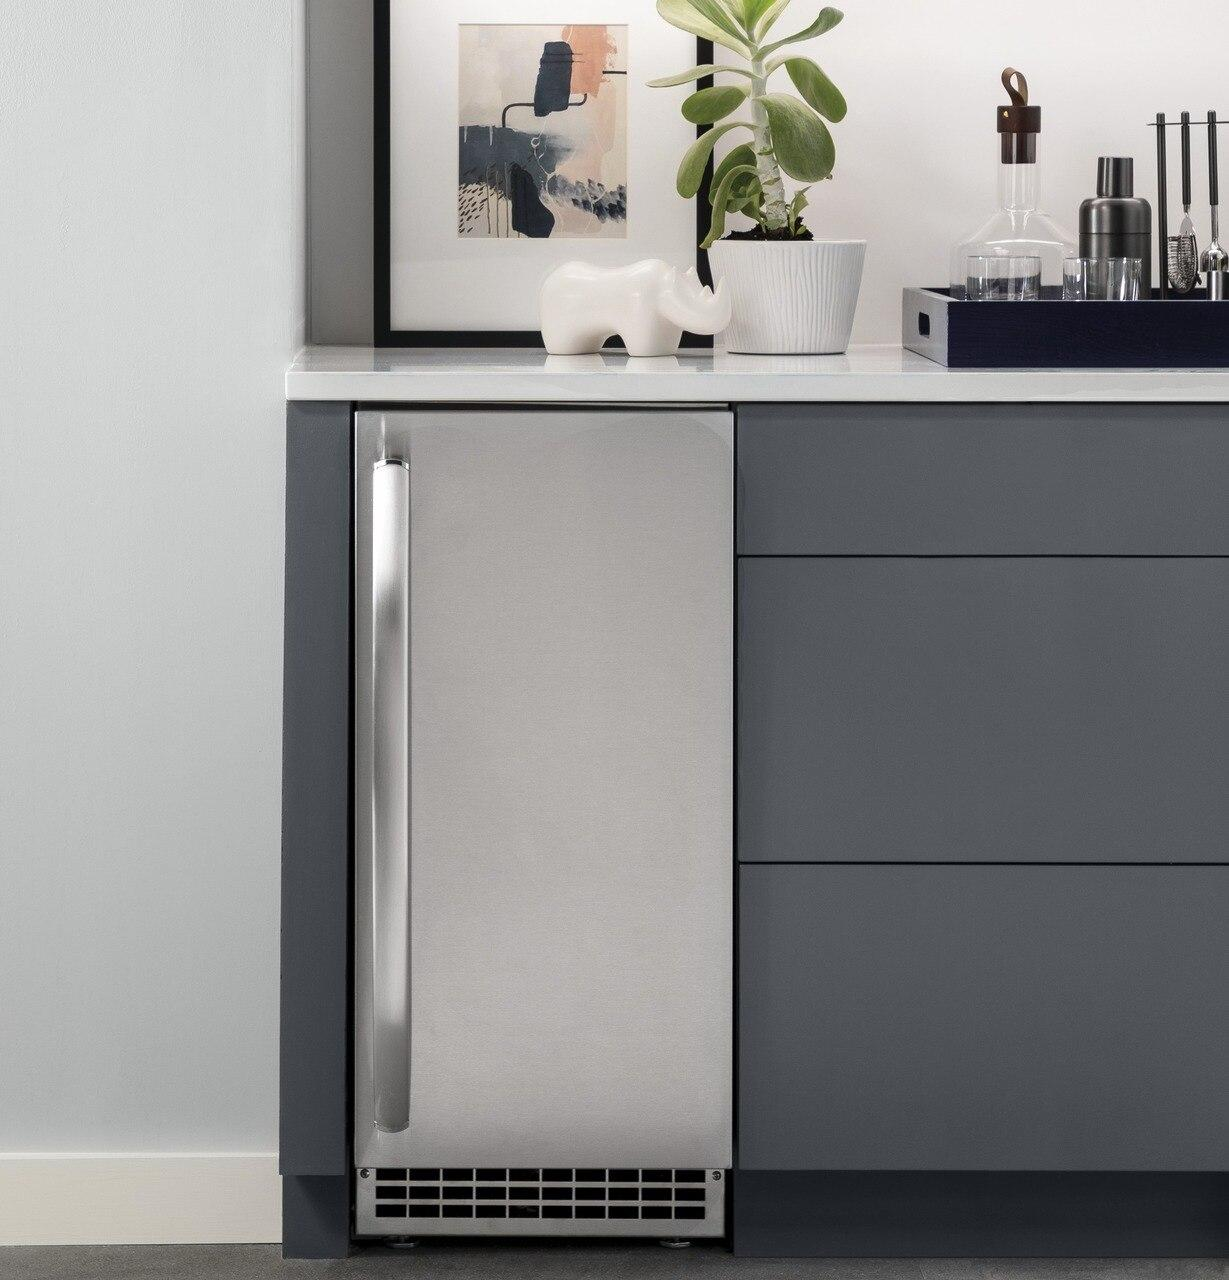 Unc15njii Cafe Ge Profile Ice Maker 15 Inch Nugget Ice Custom Panel And Handle Required Home Source